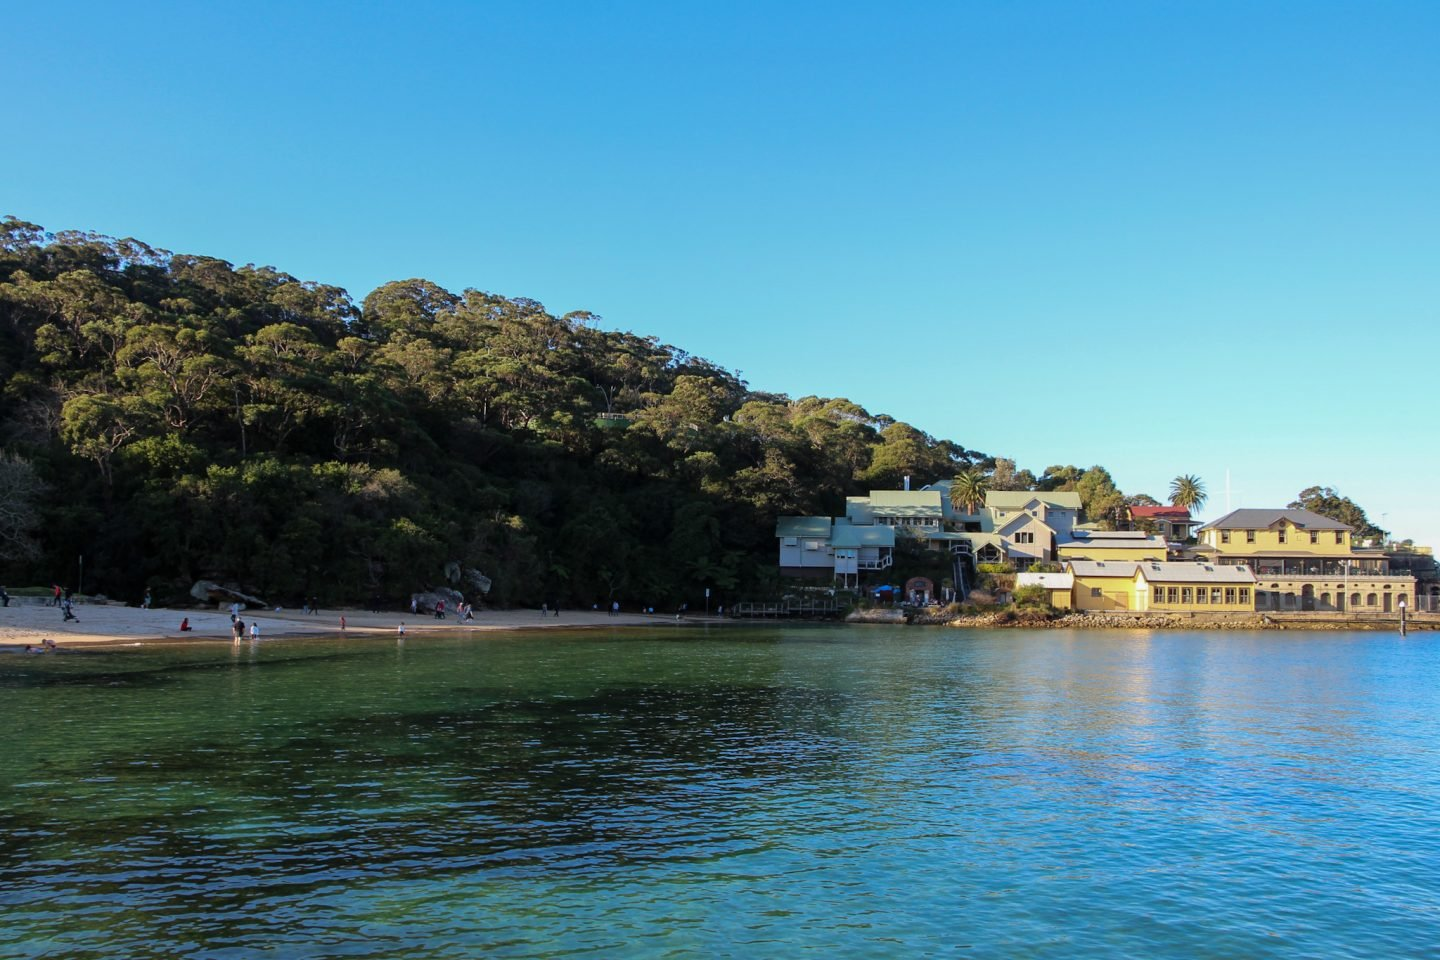 Cliftons Gardens is the last stop from Bradley's head to Chowder Bay WalkJPG